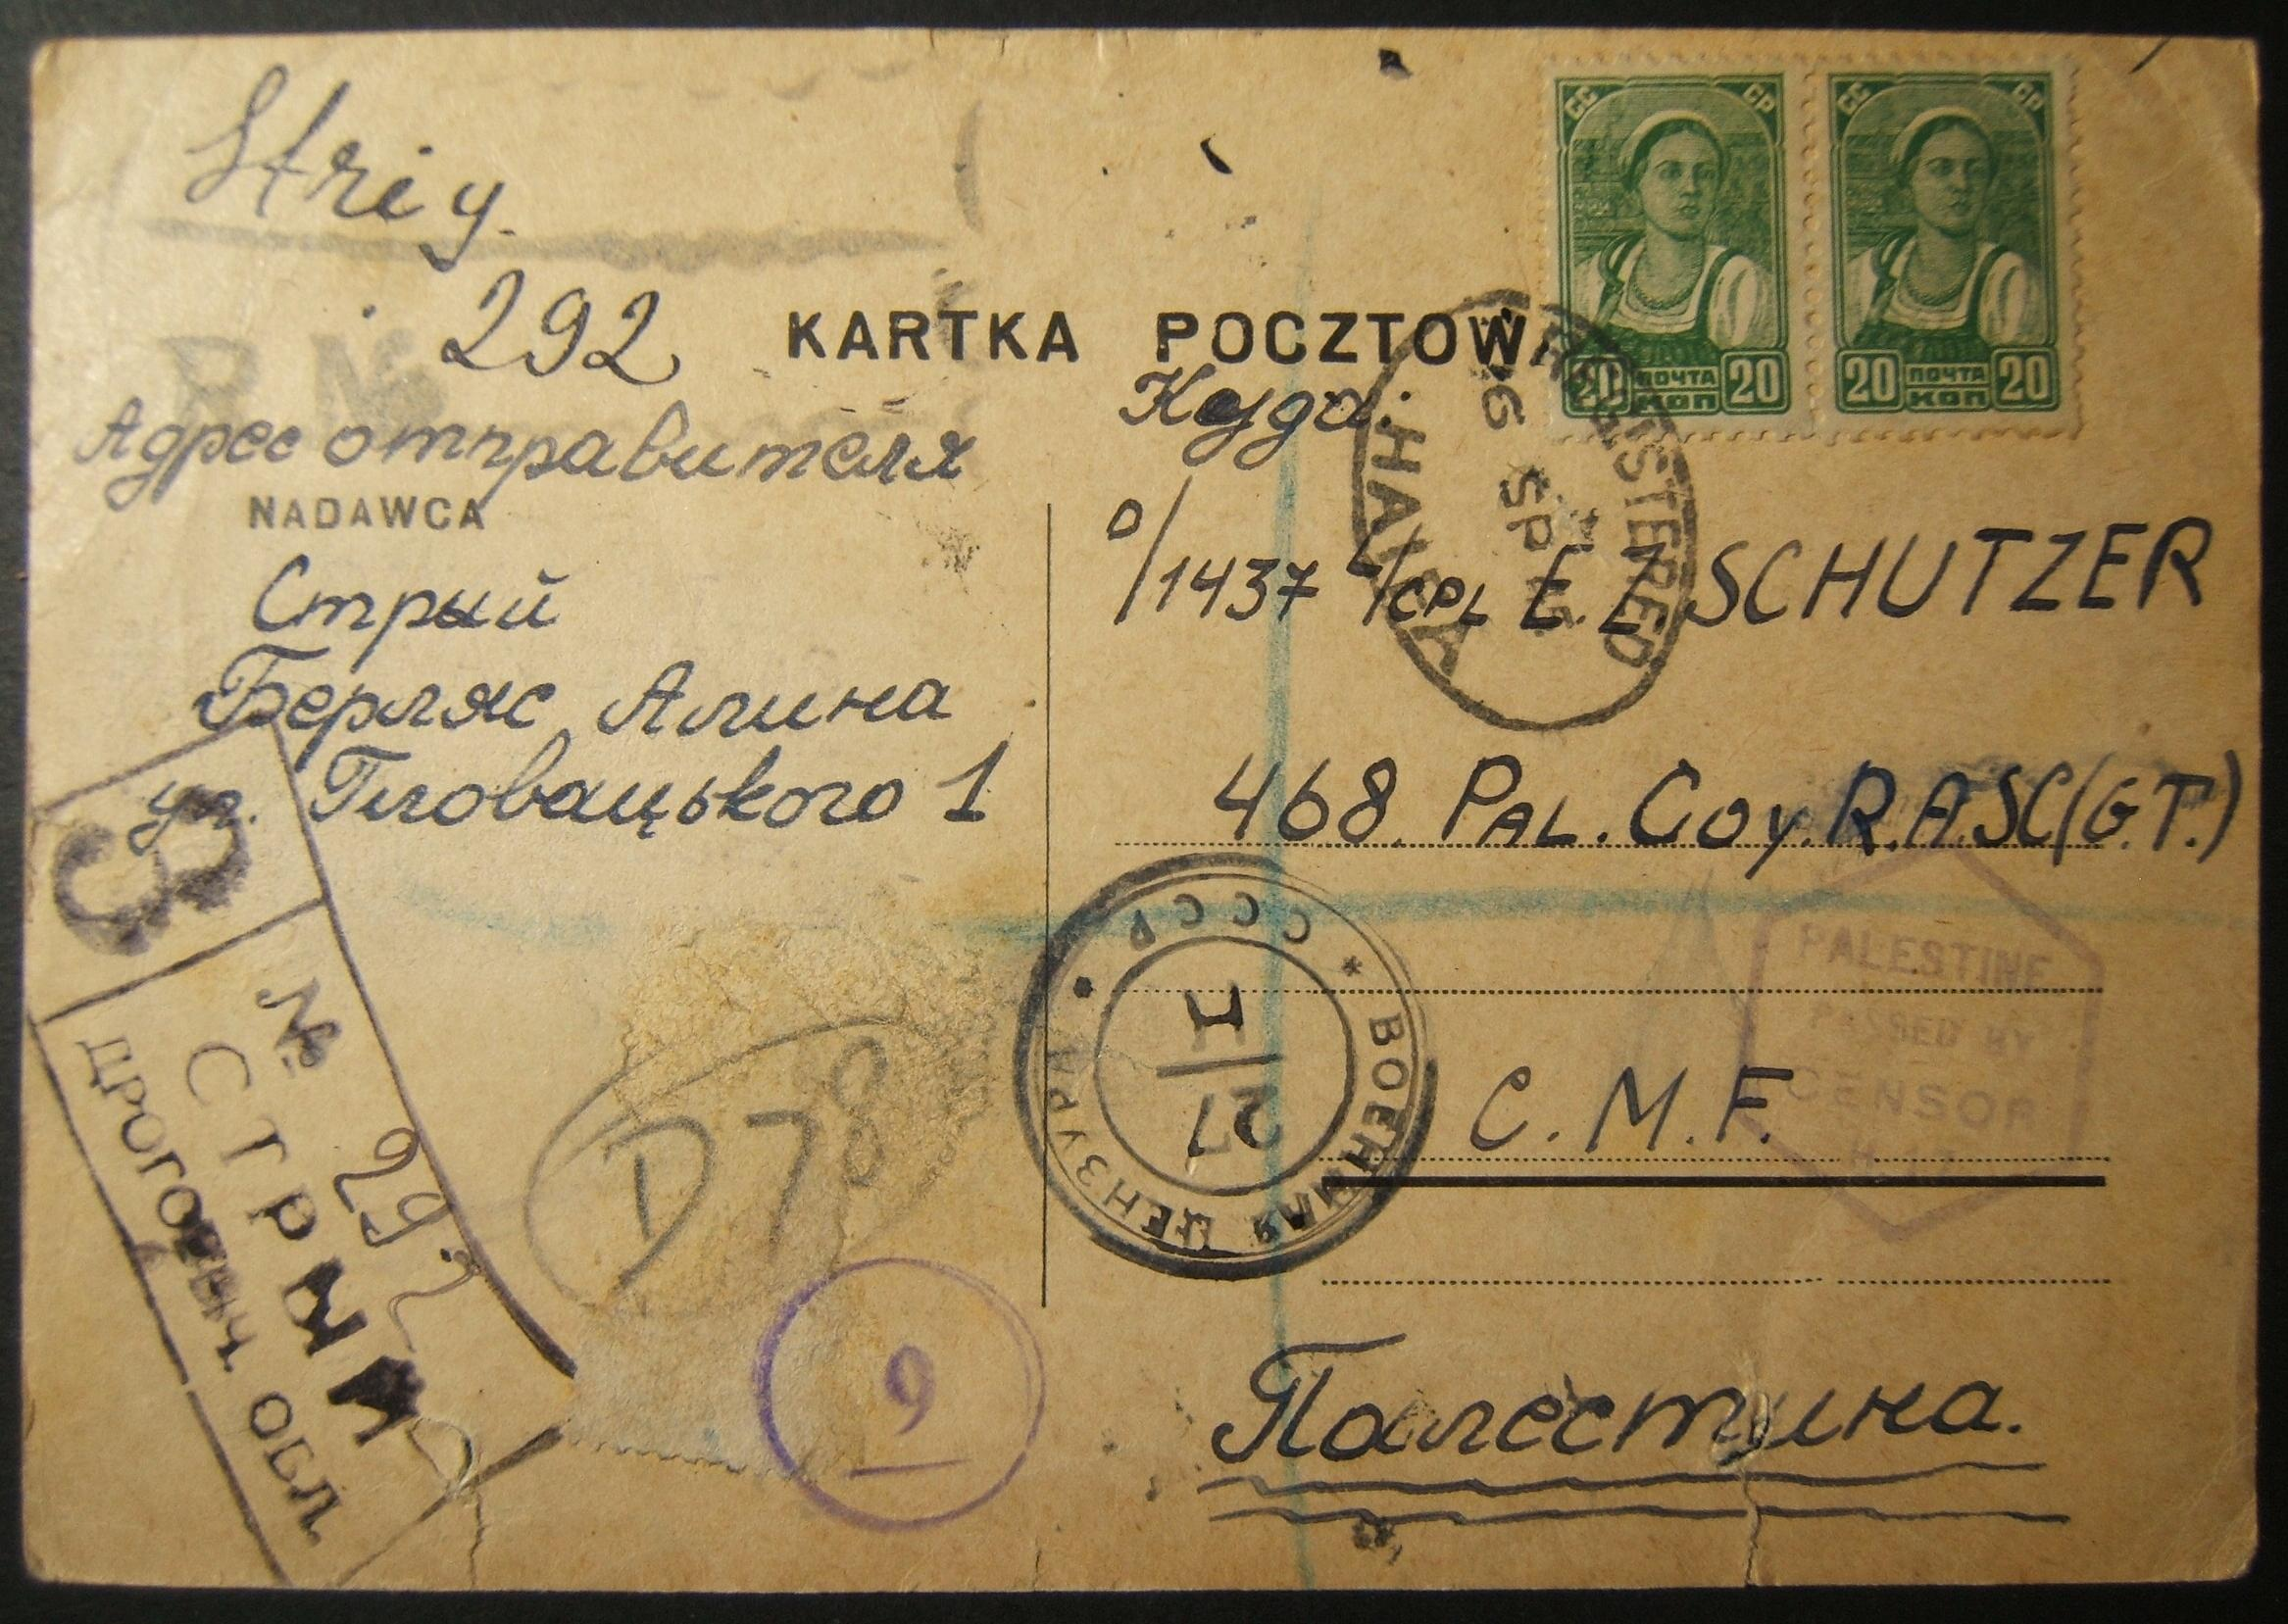 5/1945 Postwar/Holocaust mail from Soviet occupied Poland to Jewish soldier in HAIFA